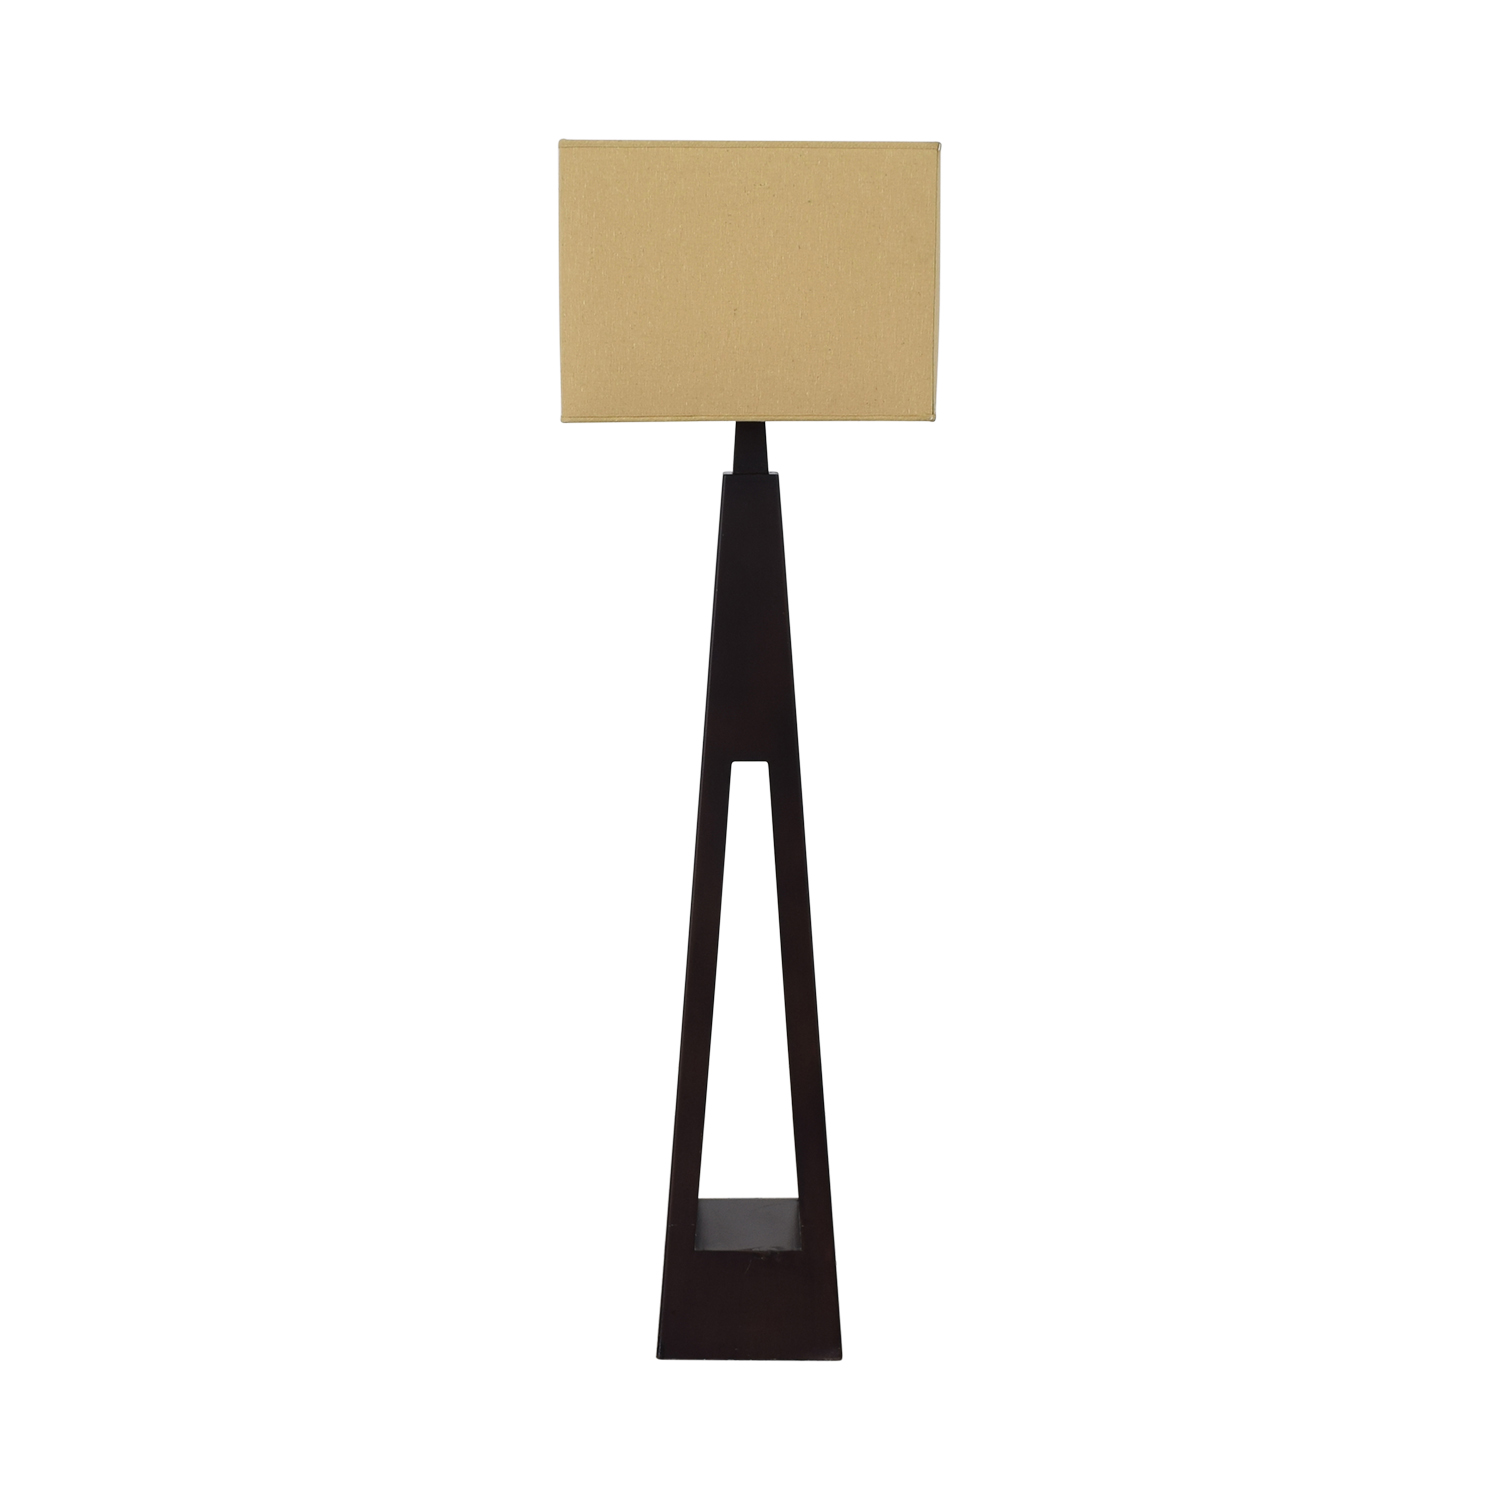 Tarogo Tarogo Triangular Wood Base Floor Lamp dimensions